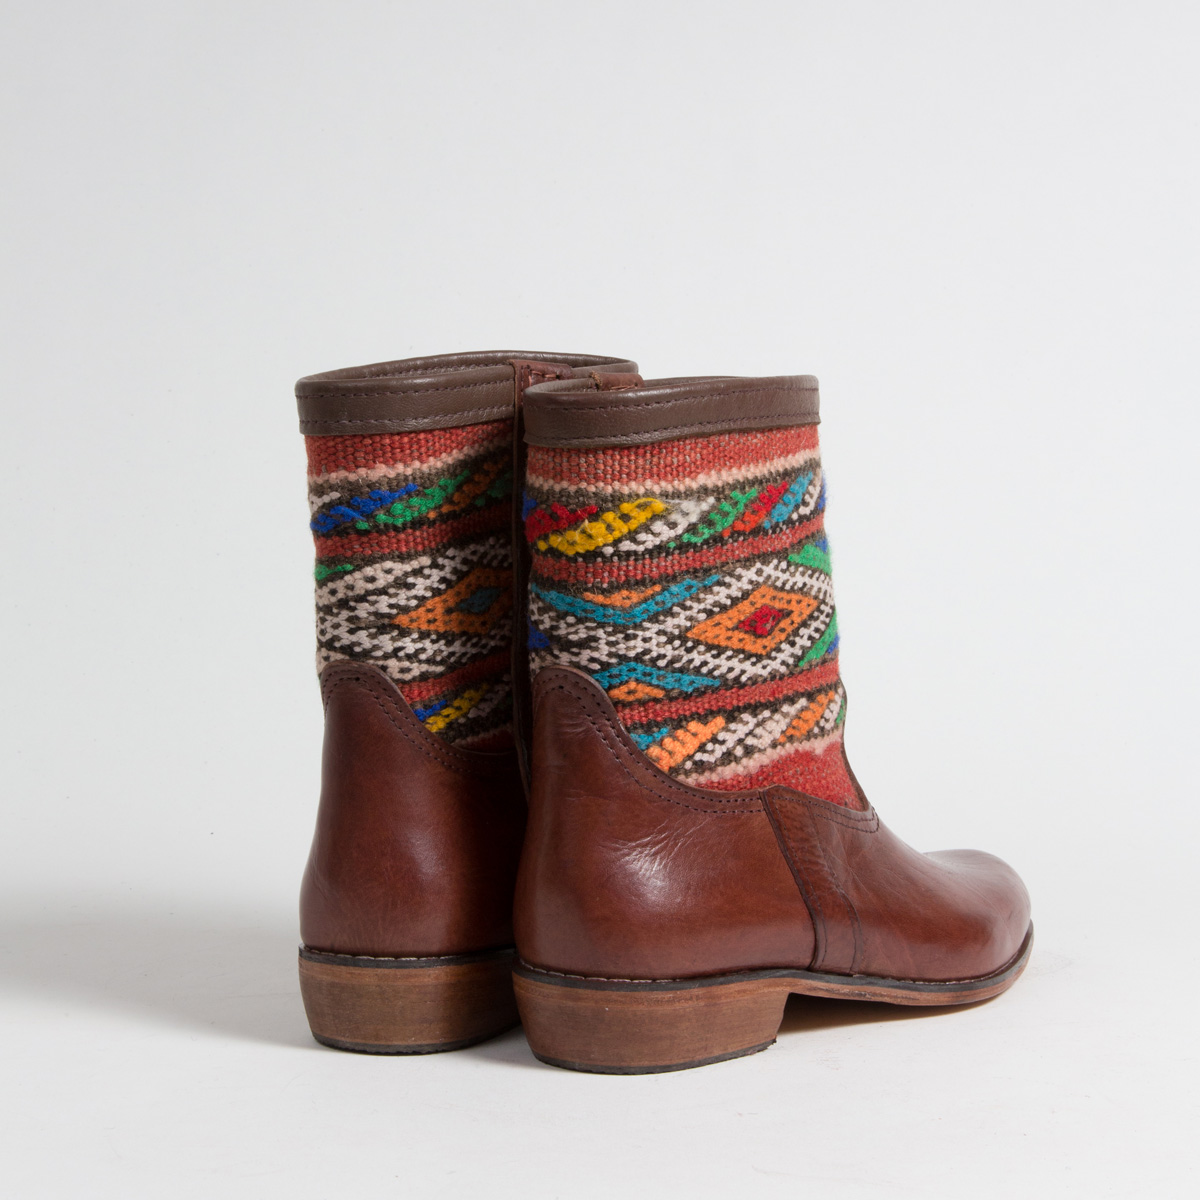 Bottines Kilim cuir mababouche artisanales (Réf. MCM8-41)